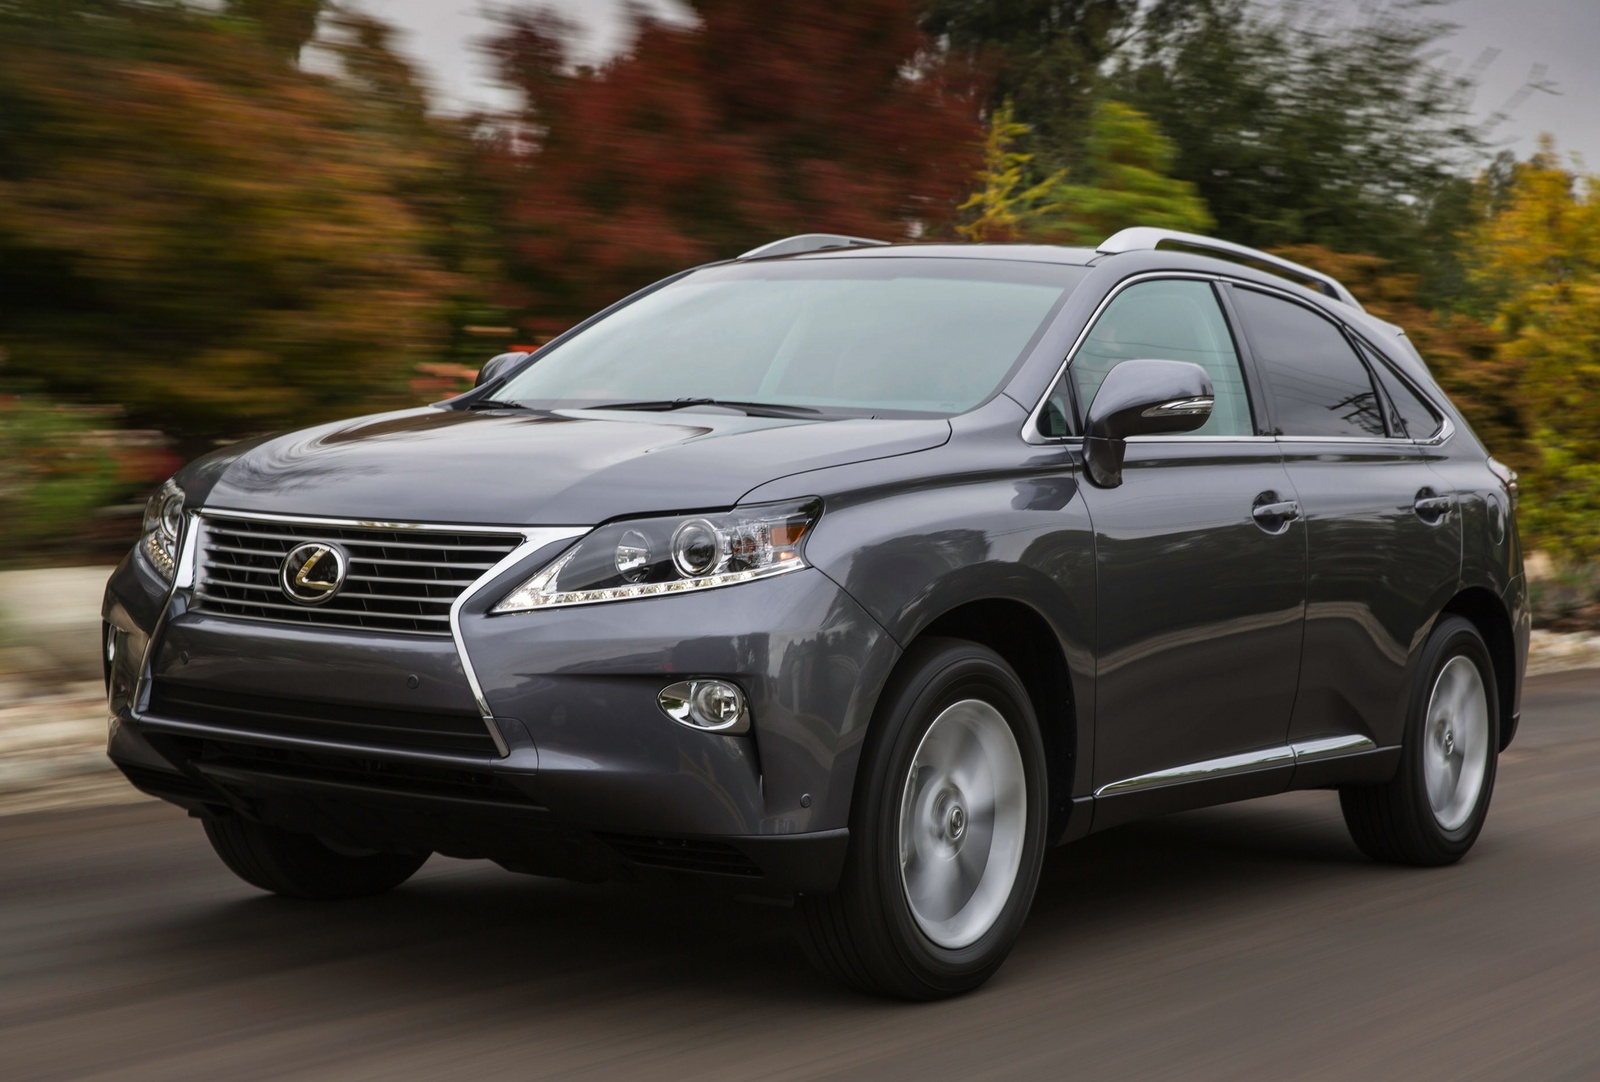 2014 Lexus RX 350 Review